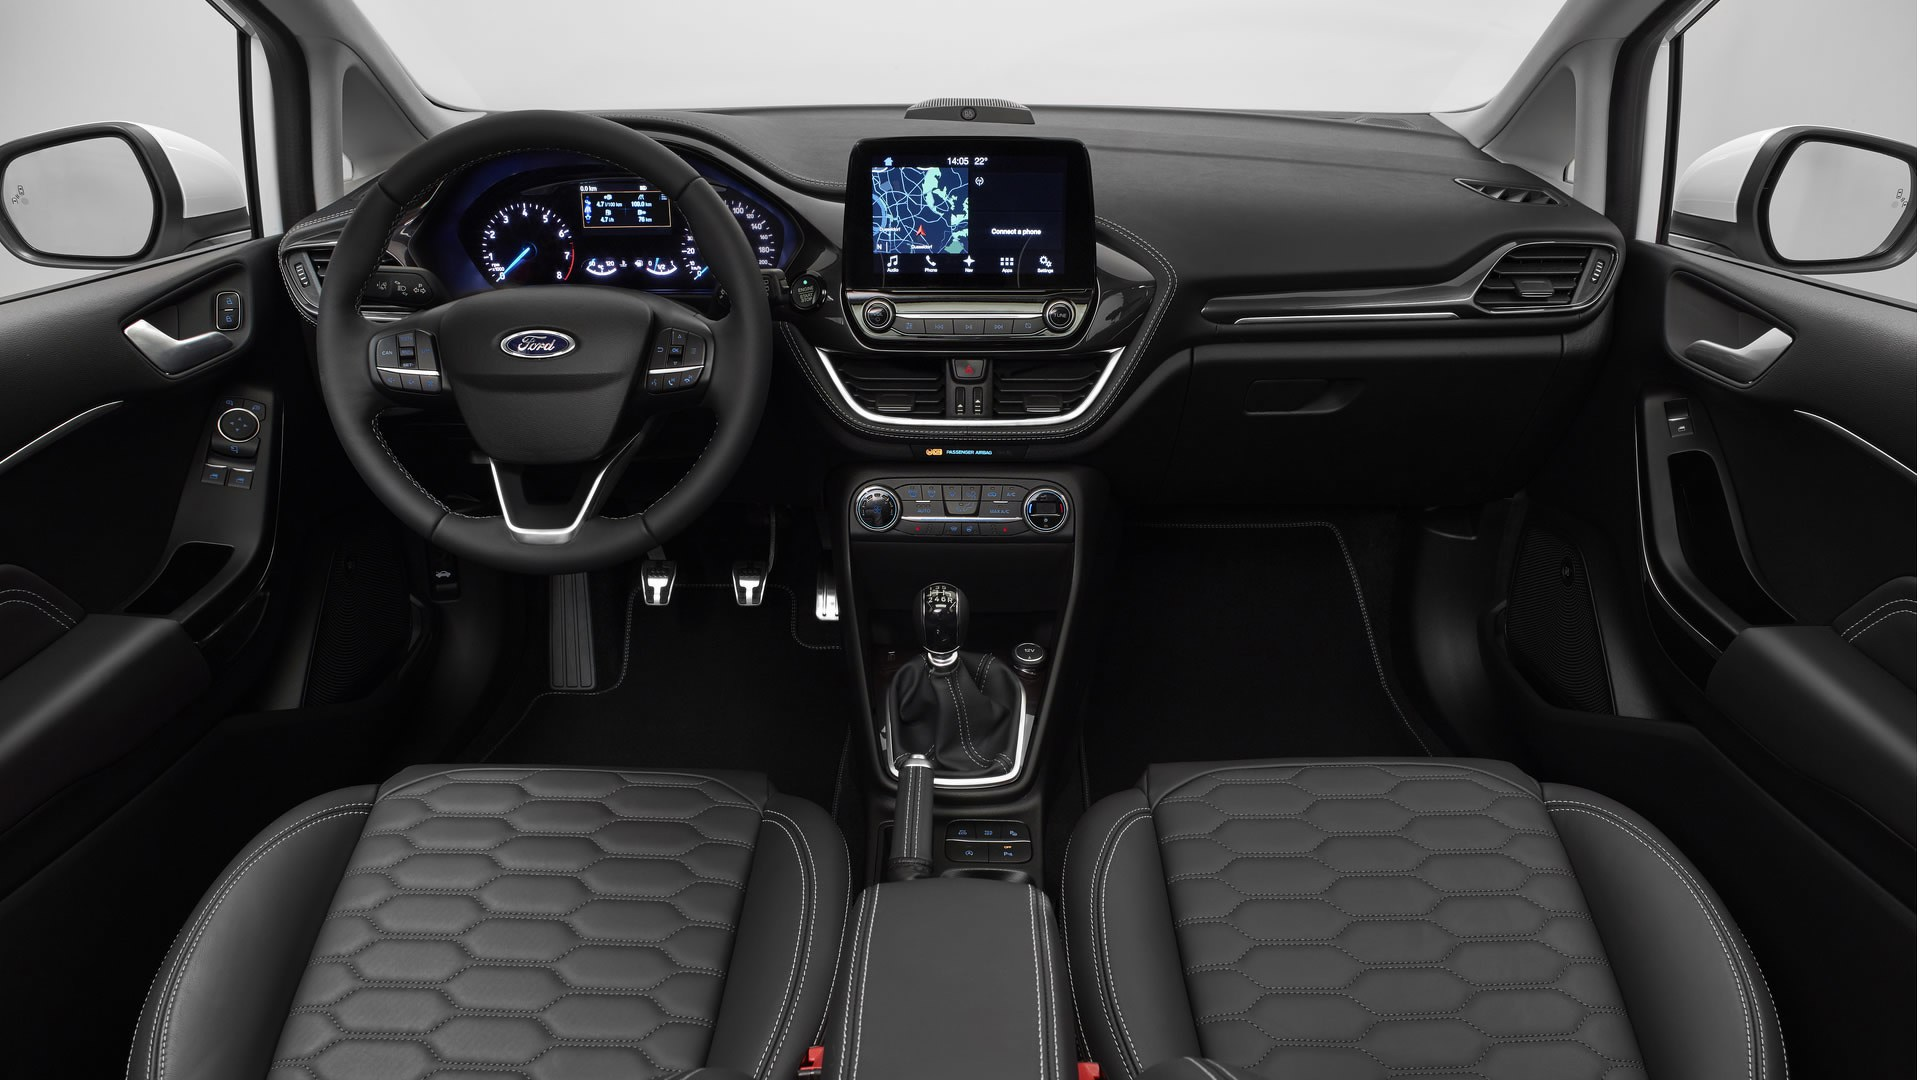 Novo Ford Fiesta 2018 - Interior